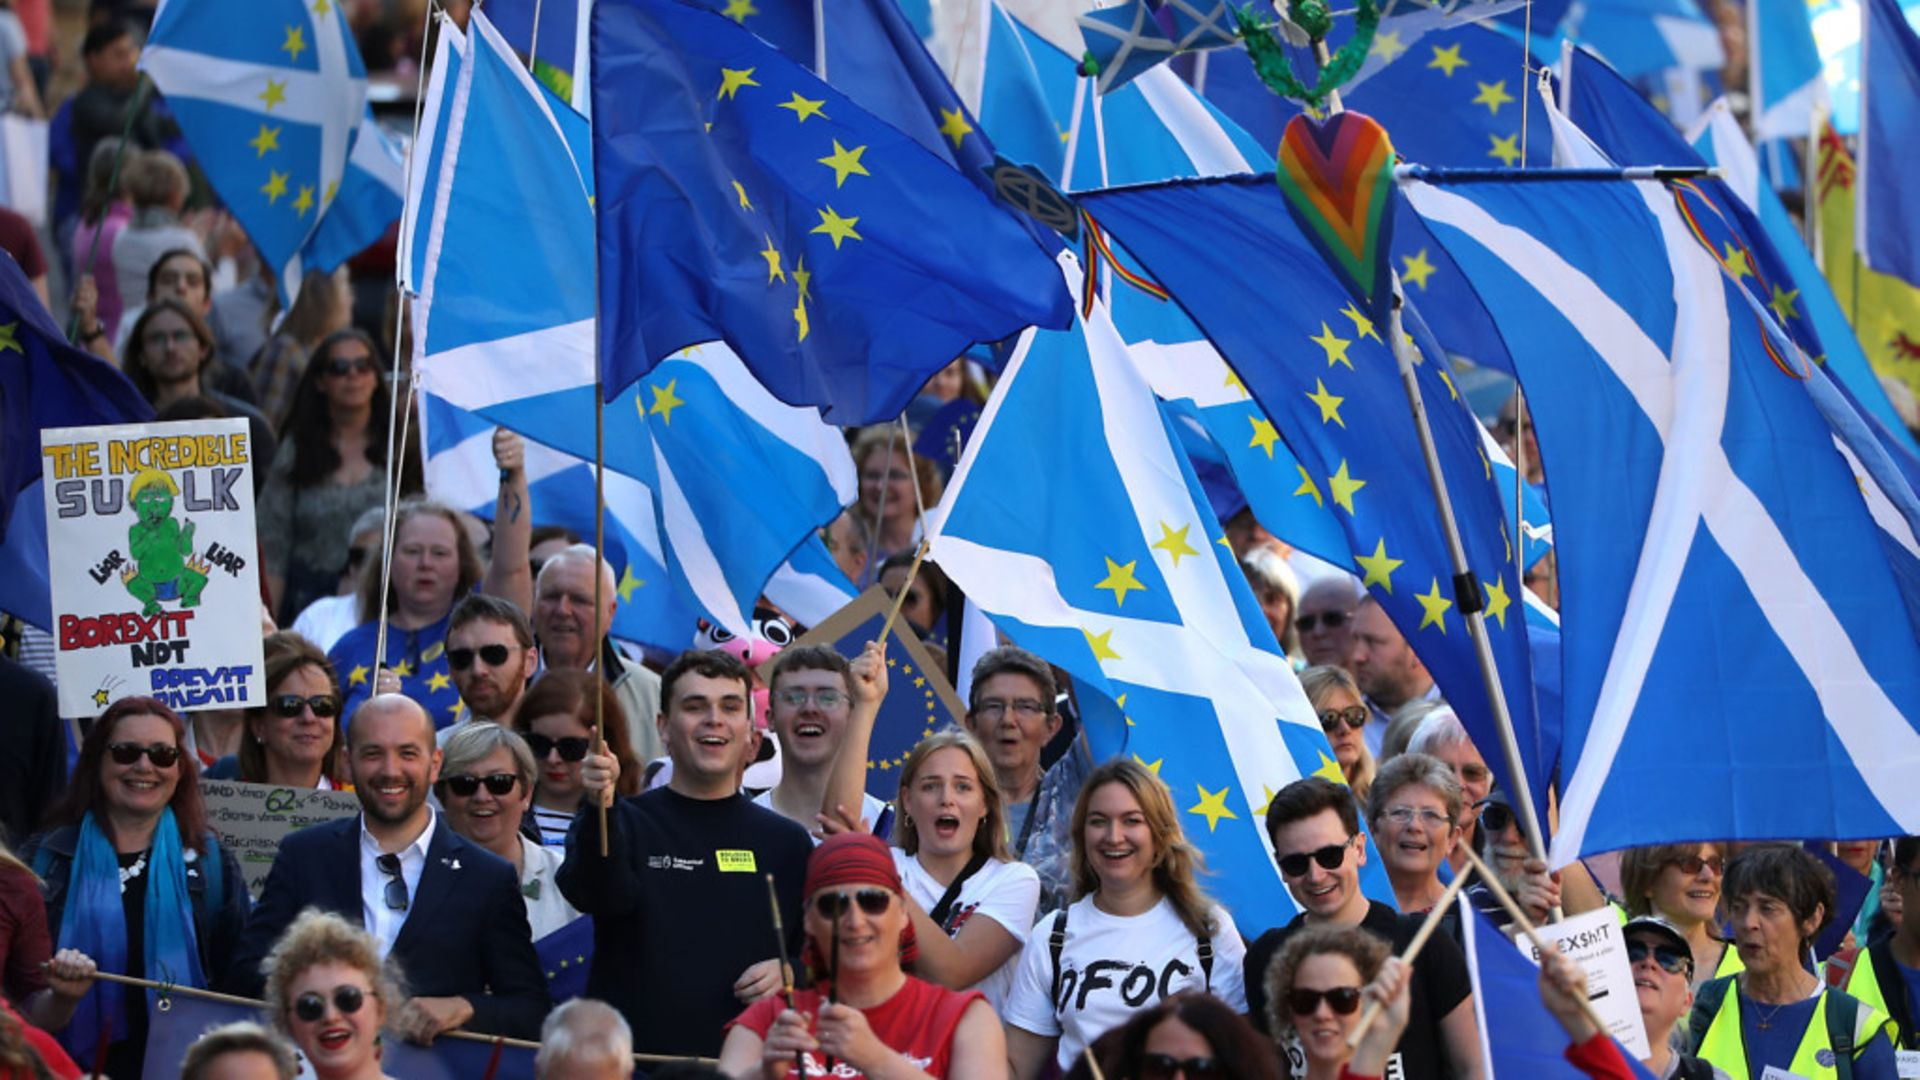 Pro-Europeans on a march in Scotland - Credit: PA